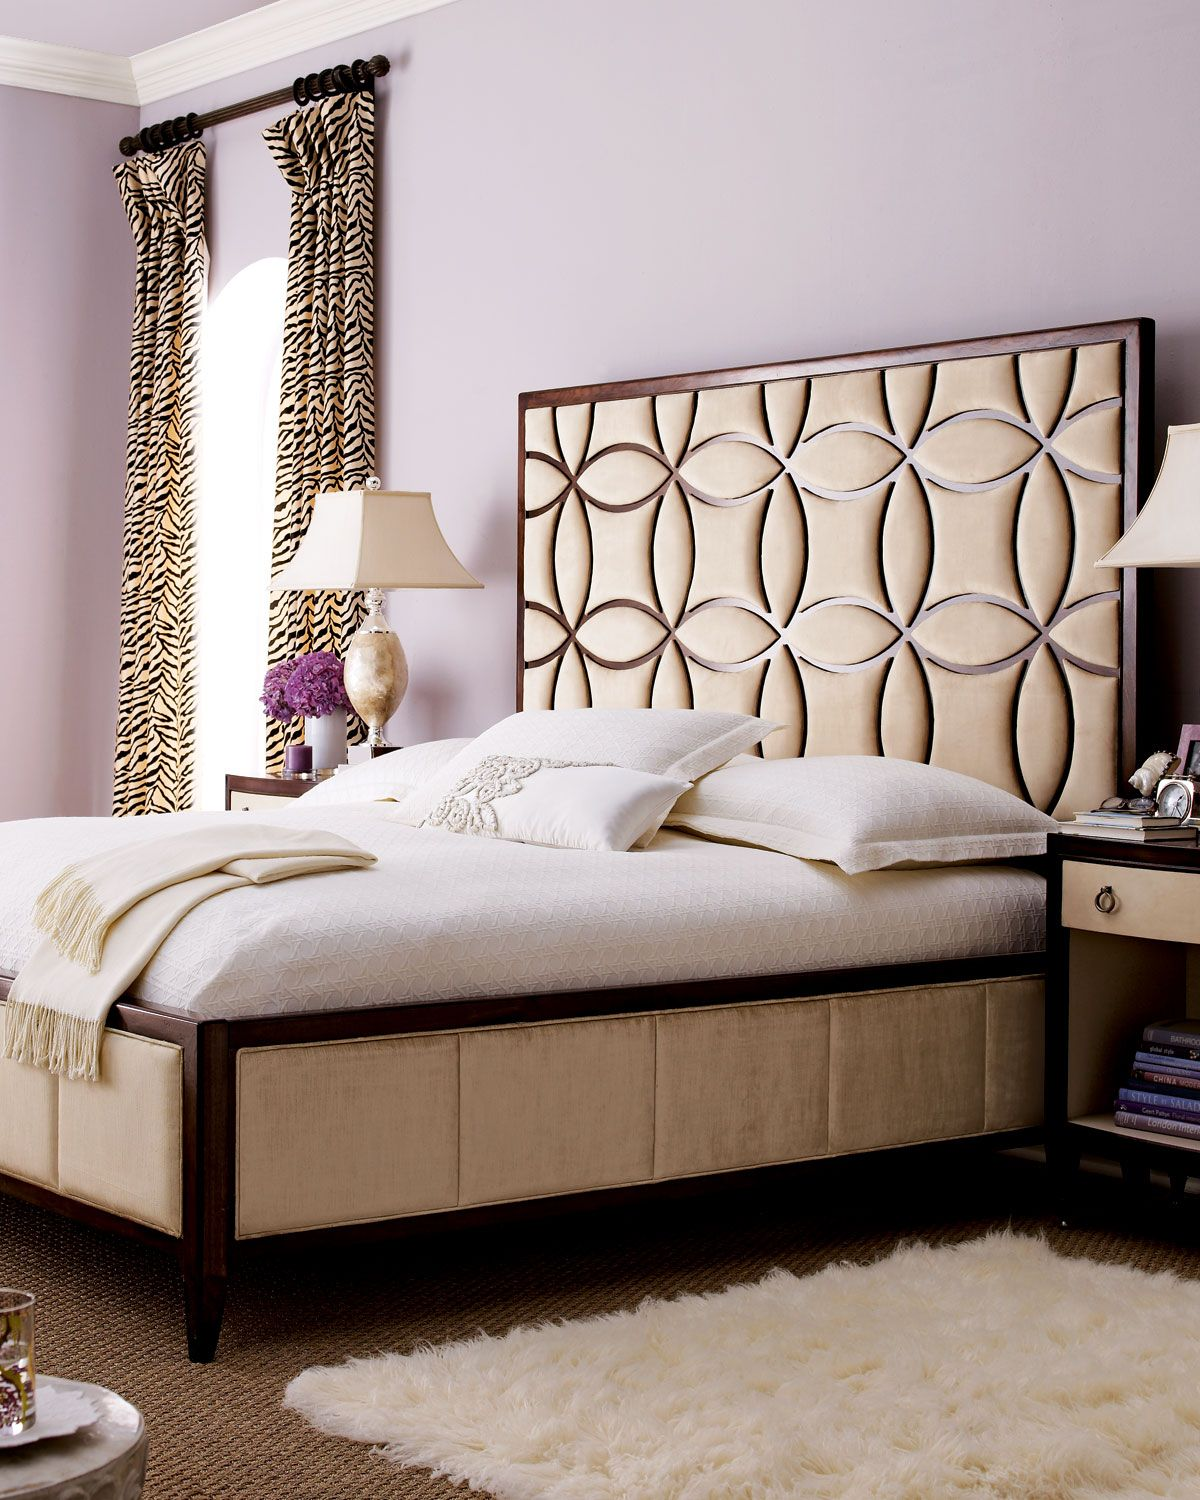 """Furniture Modern Howchow Furniture Design For Cozy Home: """"Twinkle"""" Bedroom Furniture - Horchow"""